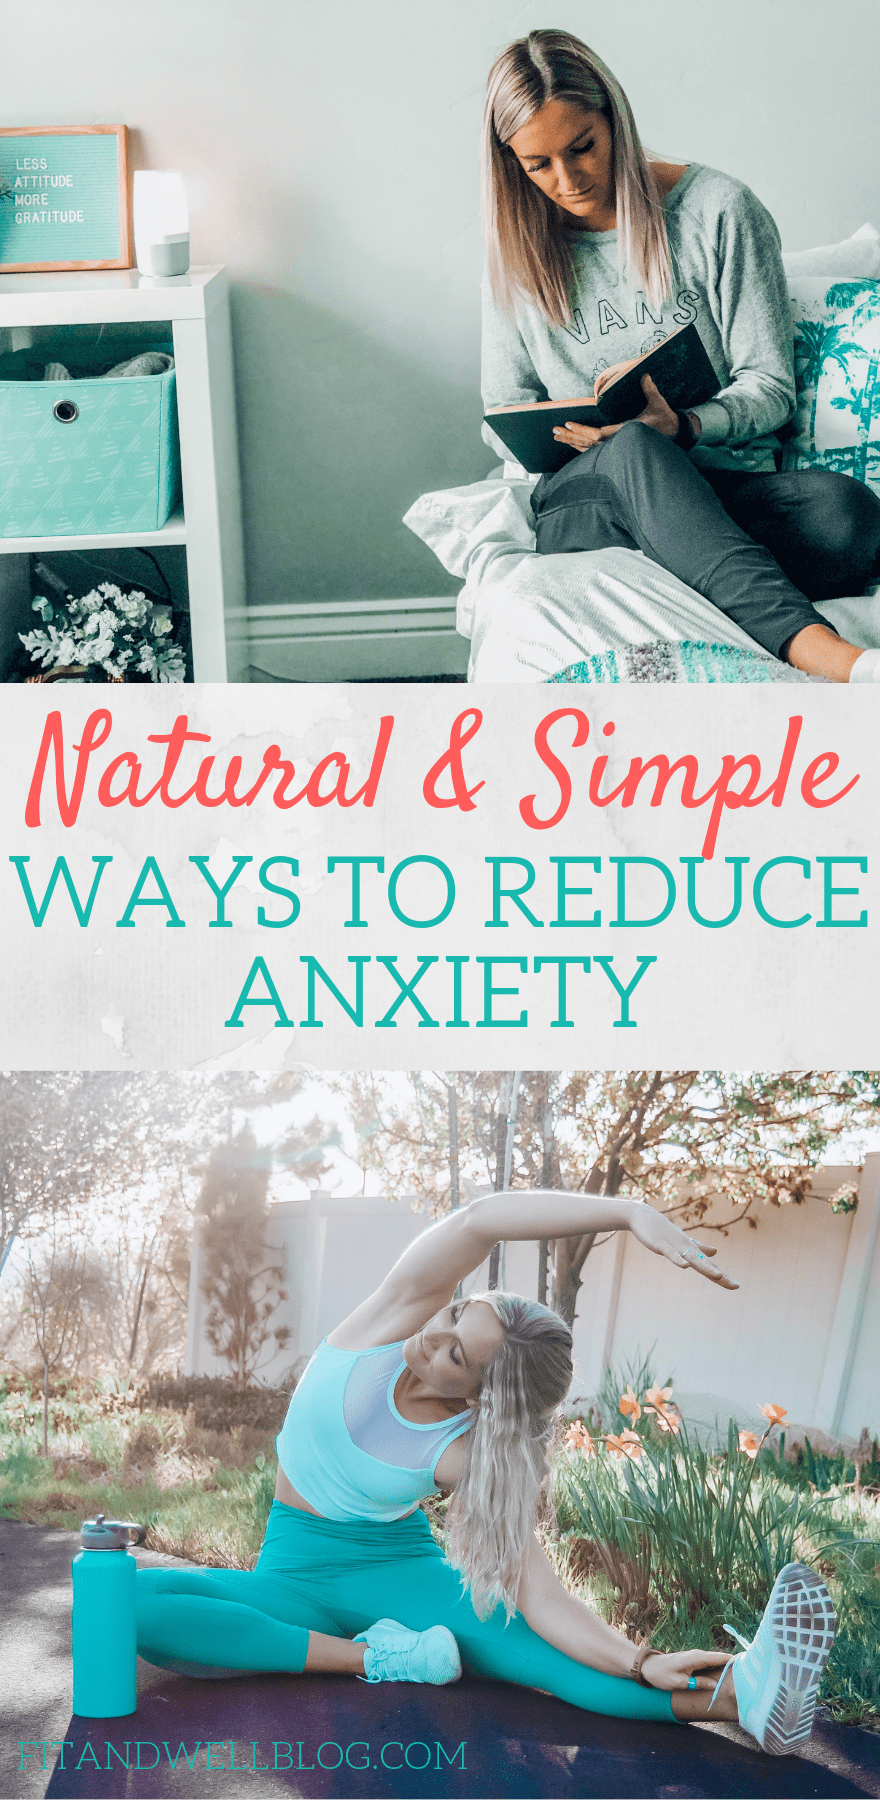 Natural ways to reduce anxiety -fitandwellblog.com